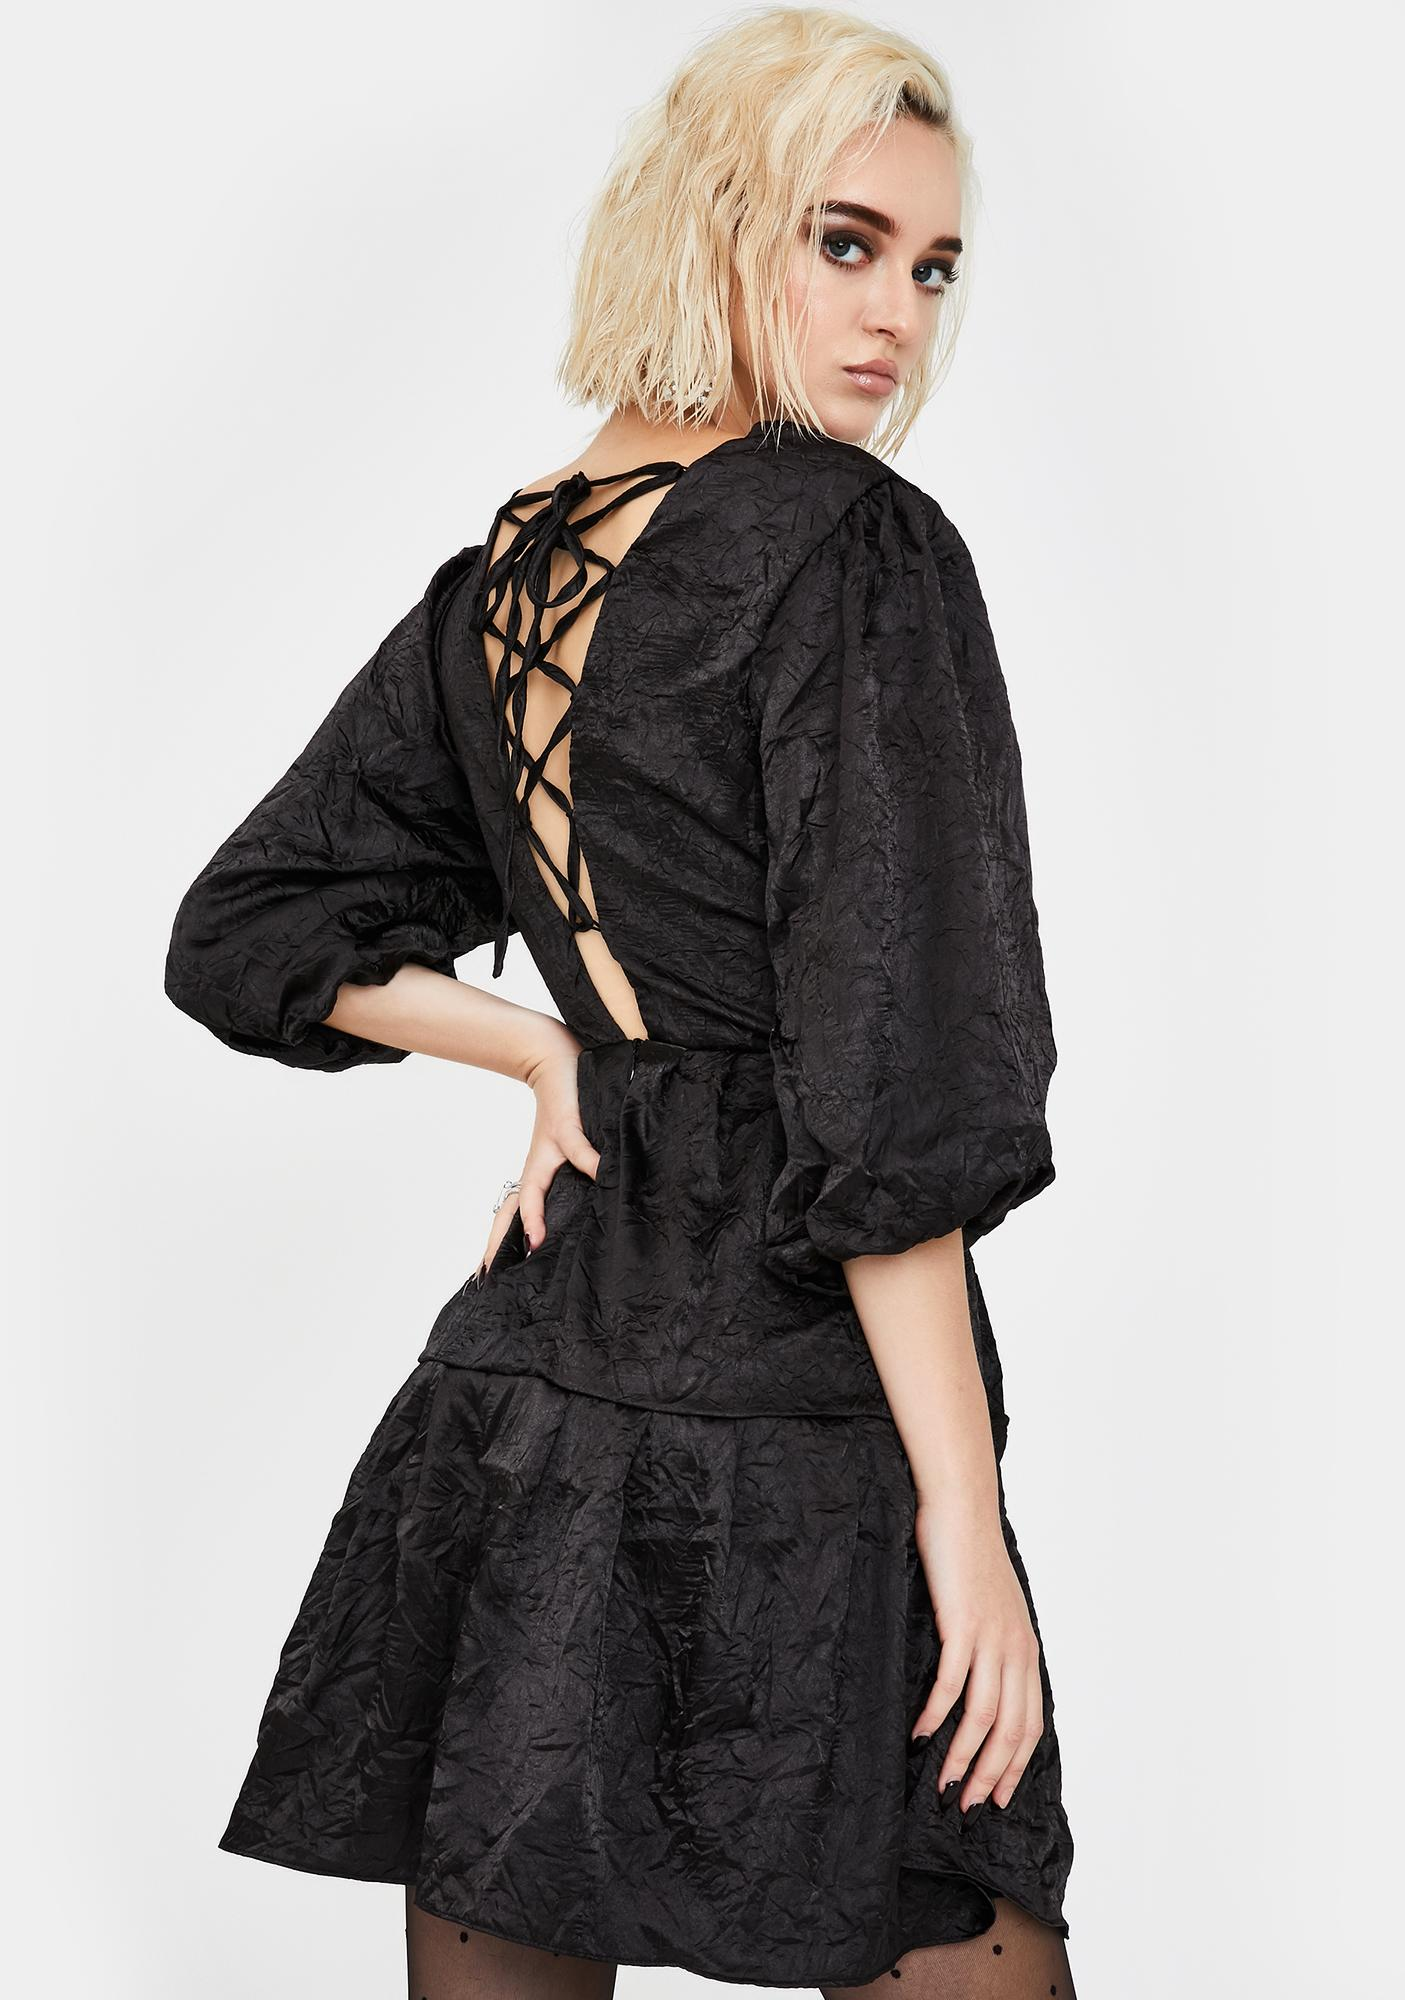 Glamorous Black Textured Lace Up Dress